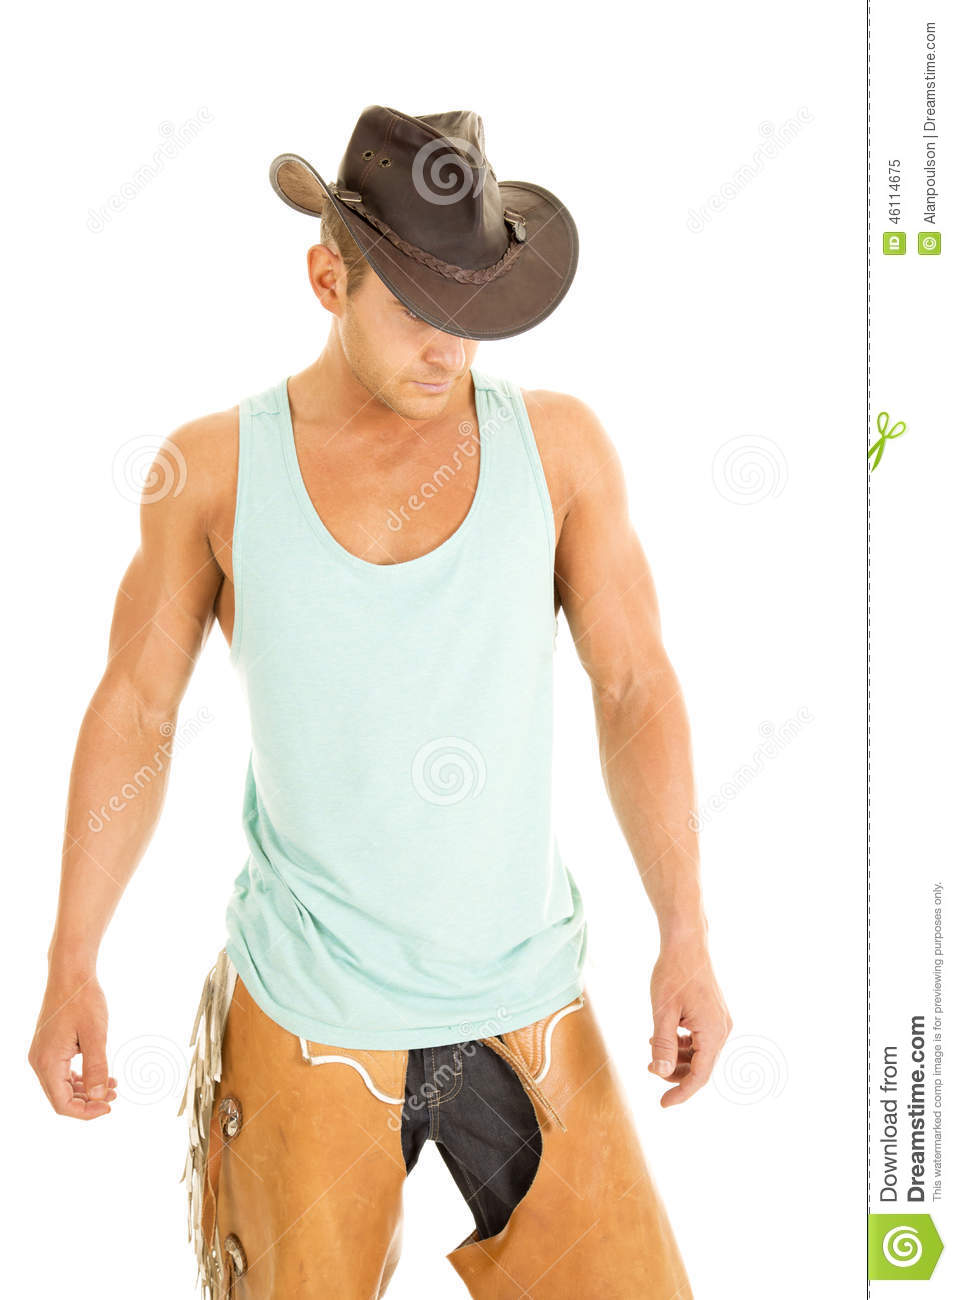 A cowboy in his green tank and chaps wearing his hat